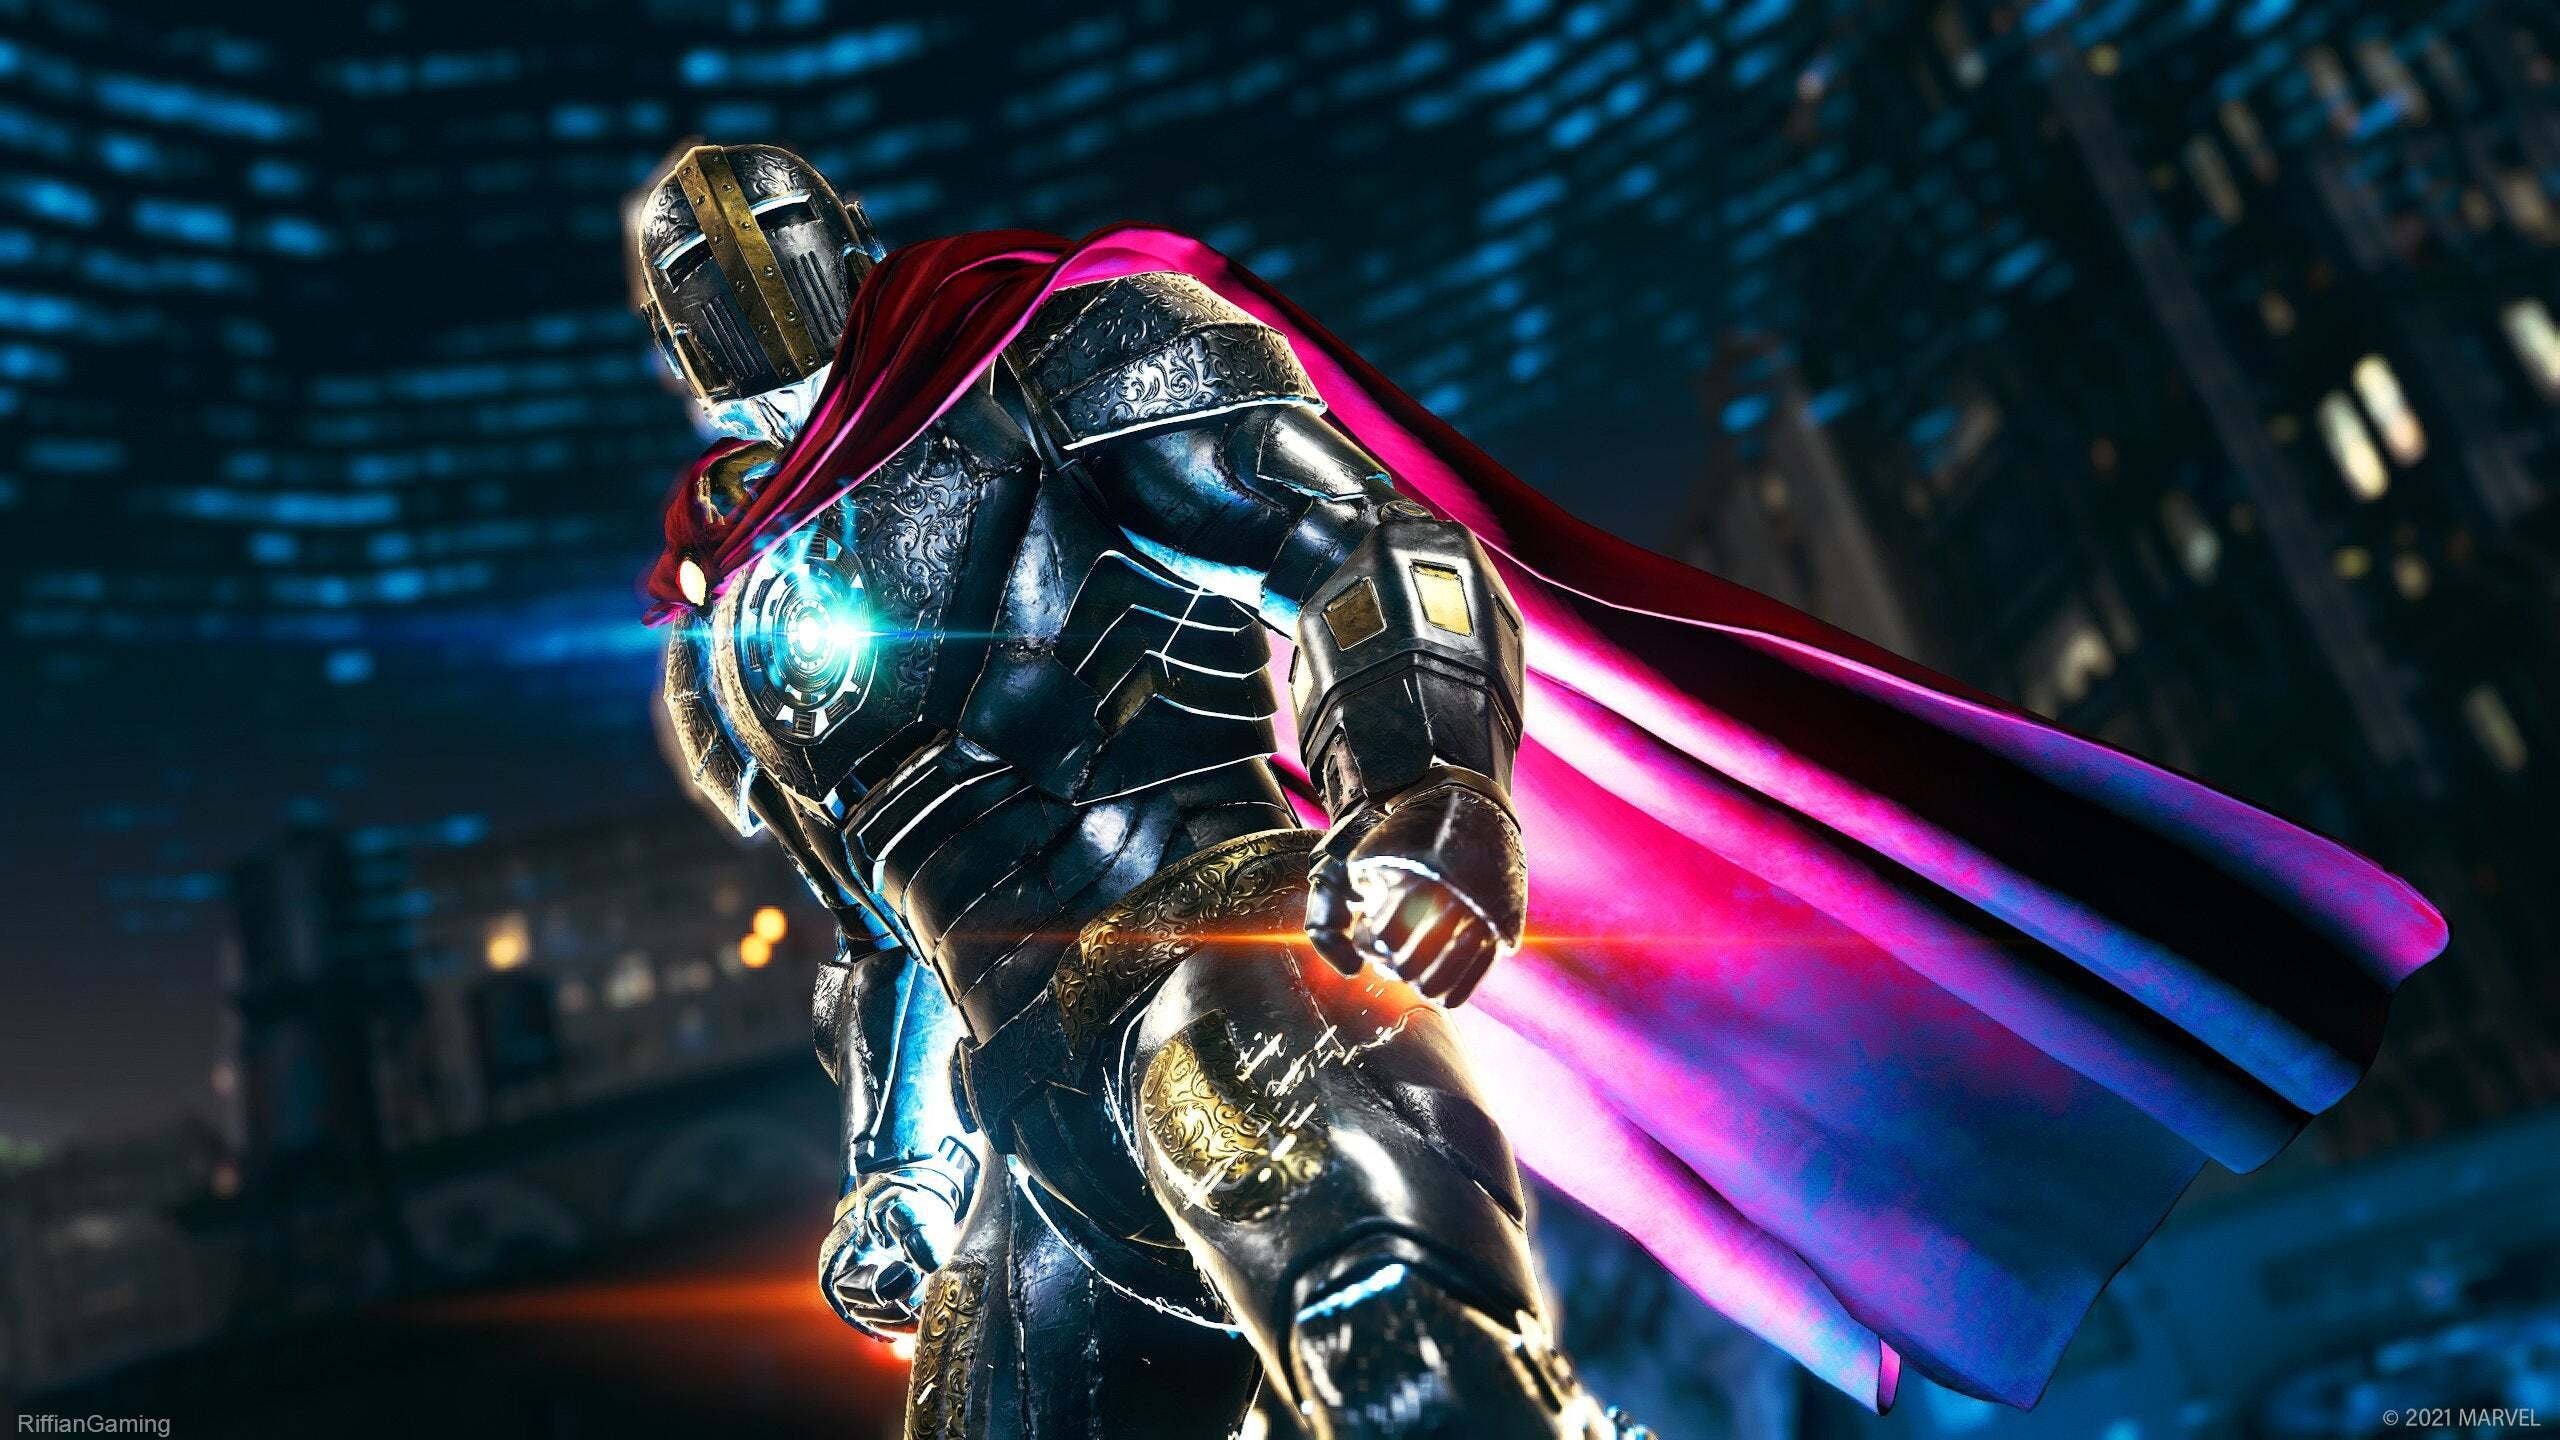 Iron Man in his Iron Knight costume with glowing cape and glinting flashes of metal.